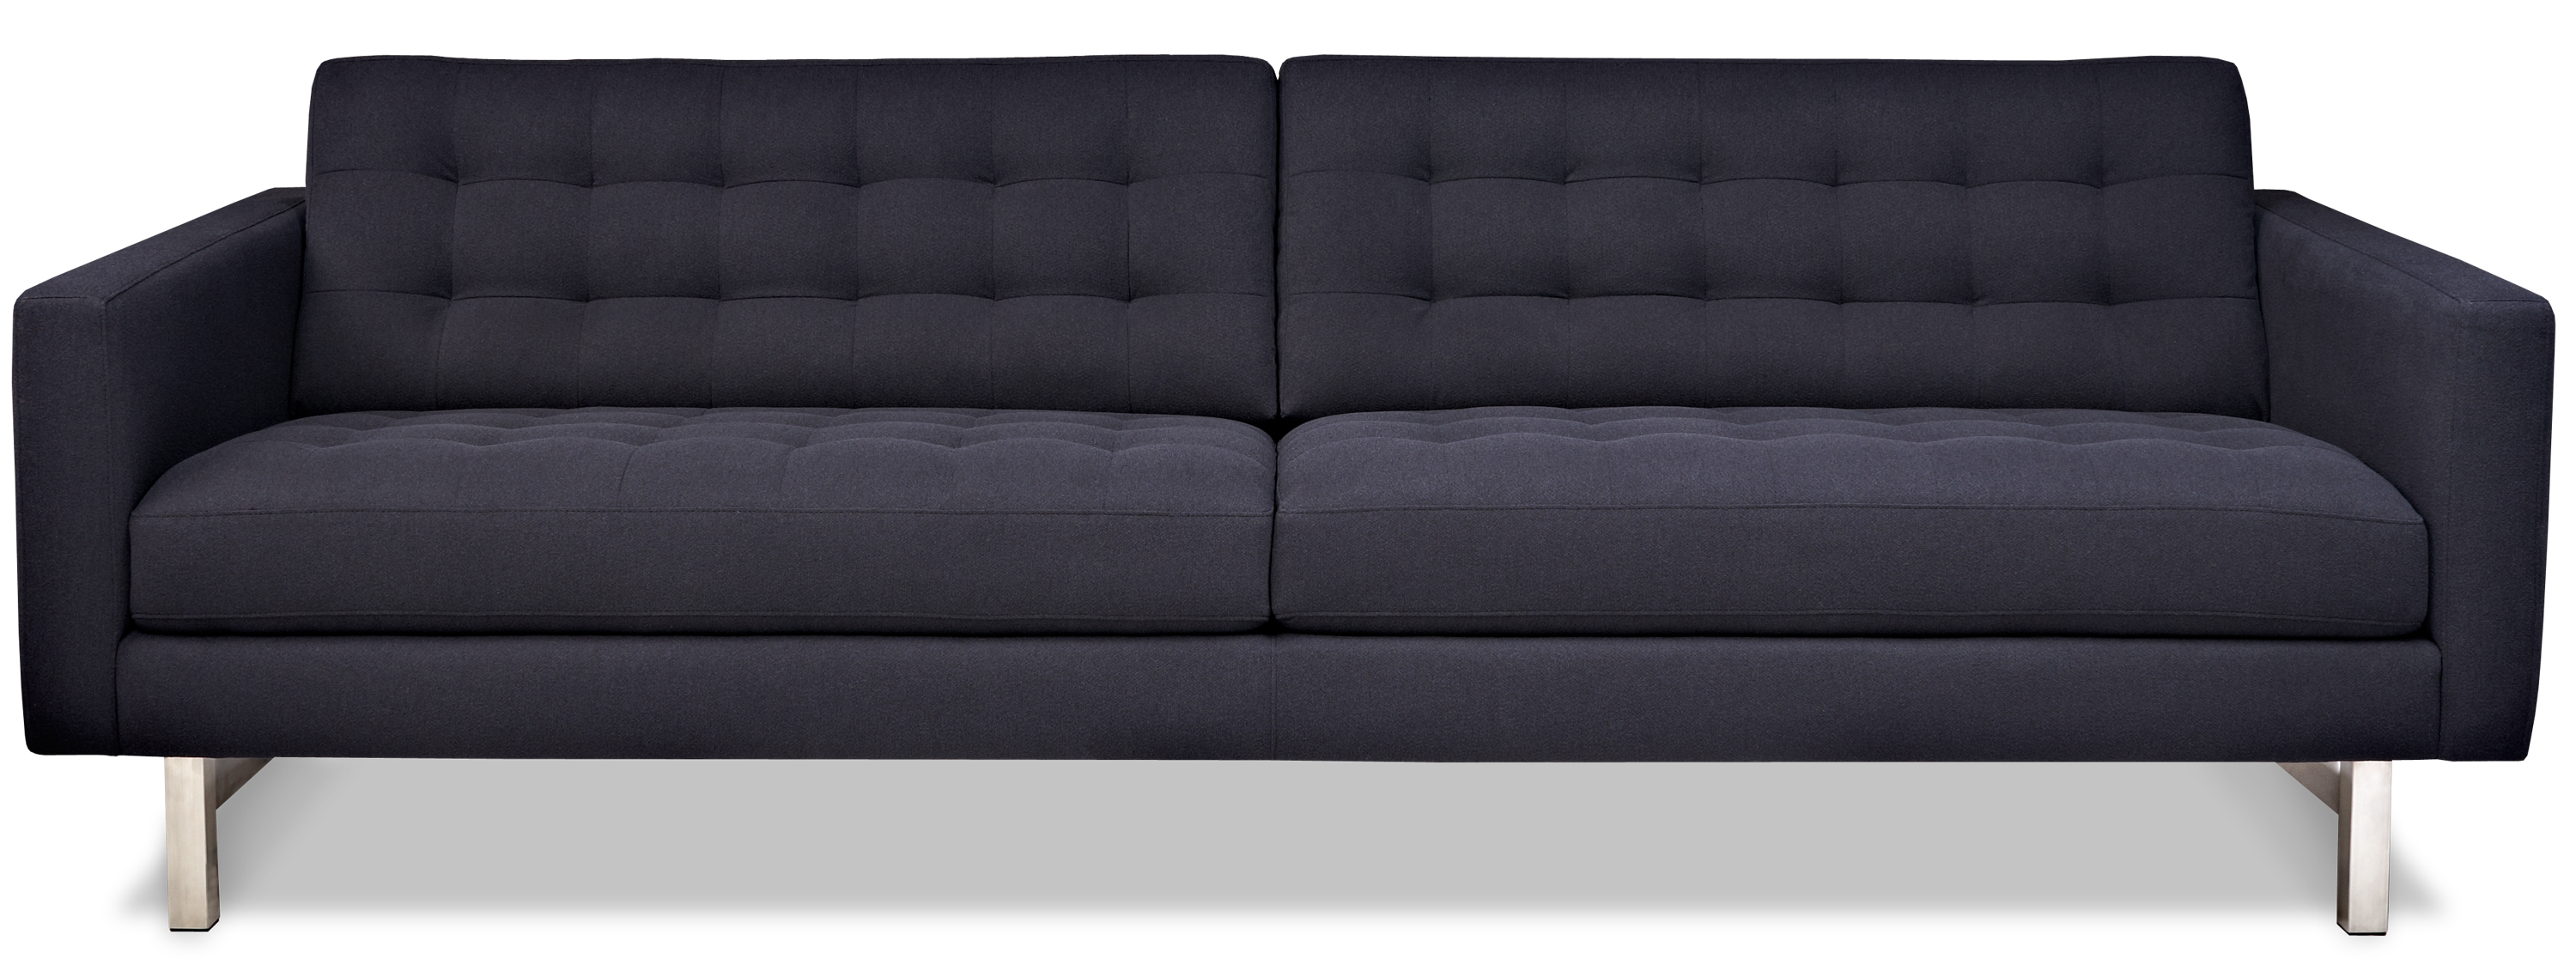 parker leather sofa reviews best colors for living room the century house madison wi